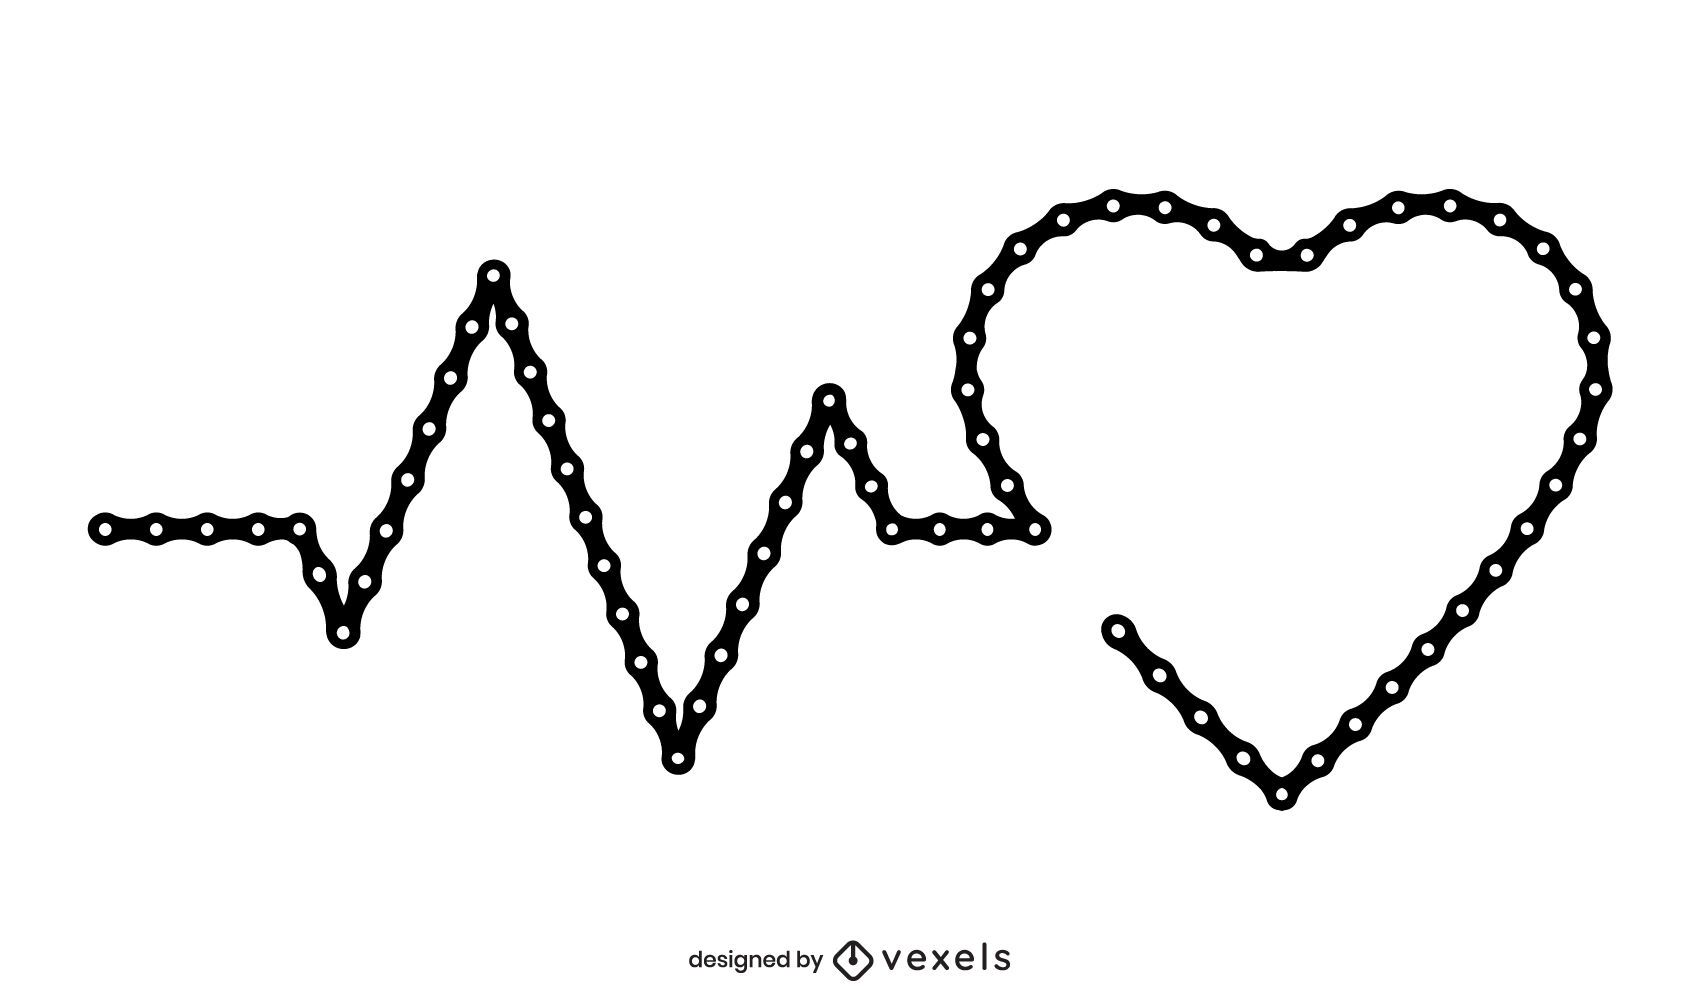 Bicycle chain heartbeat illustration design